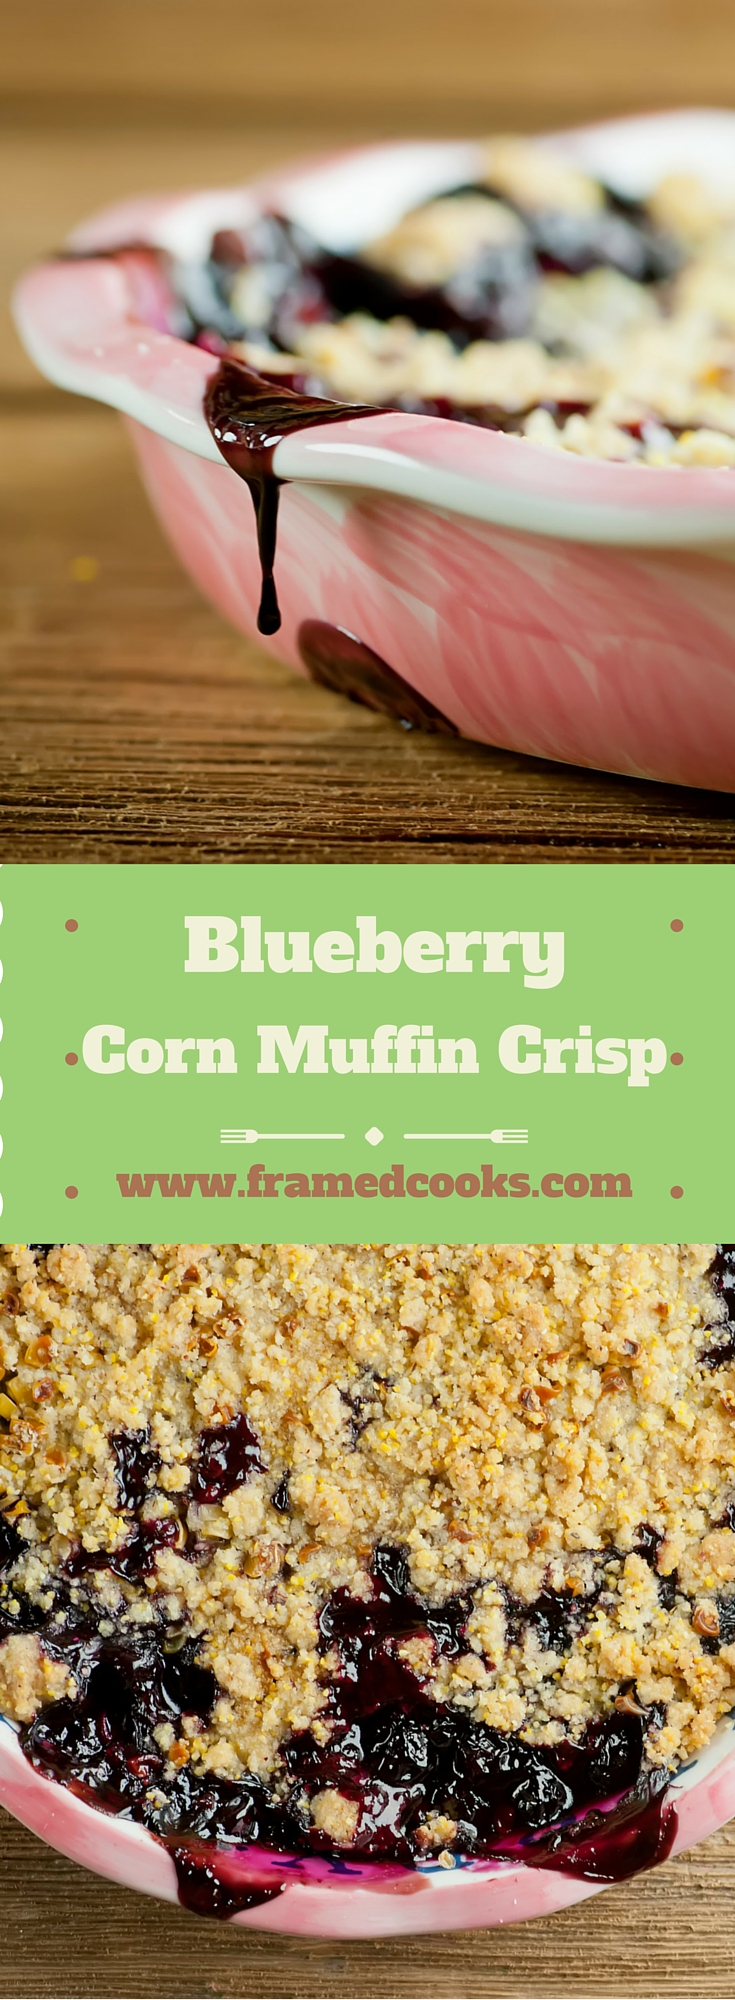 Blueberries meet corn muffins in this summer dessert recipe that features a sweet blueberry mixture topped with a fresh corn muffin crumble!